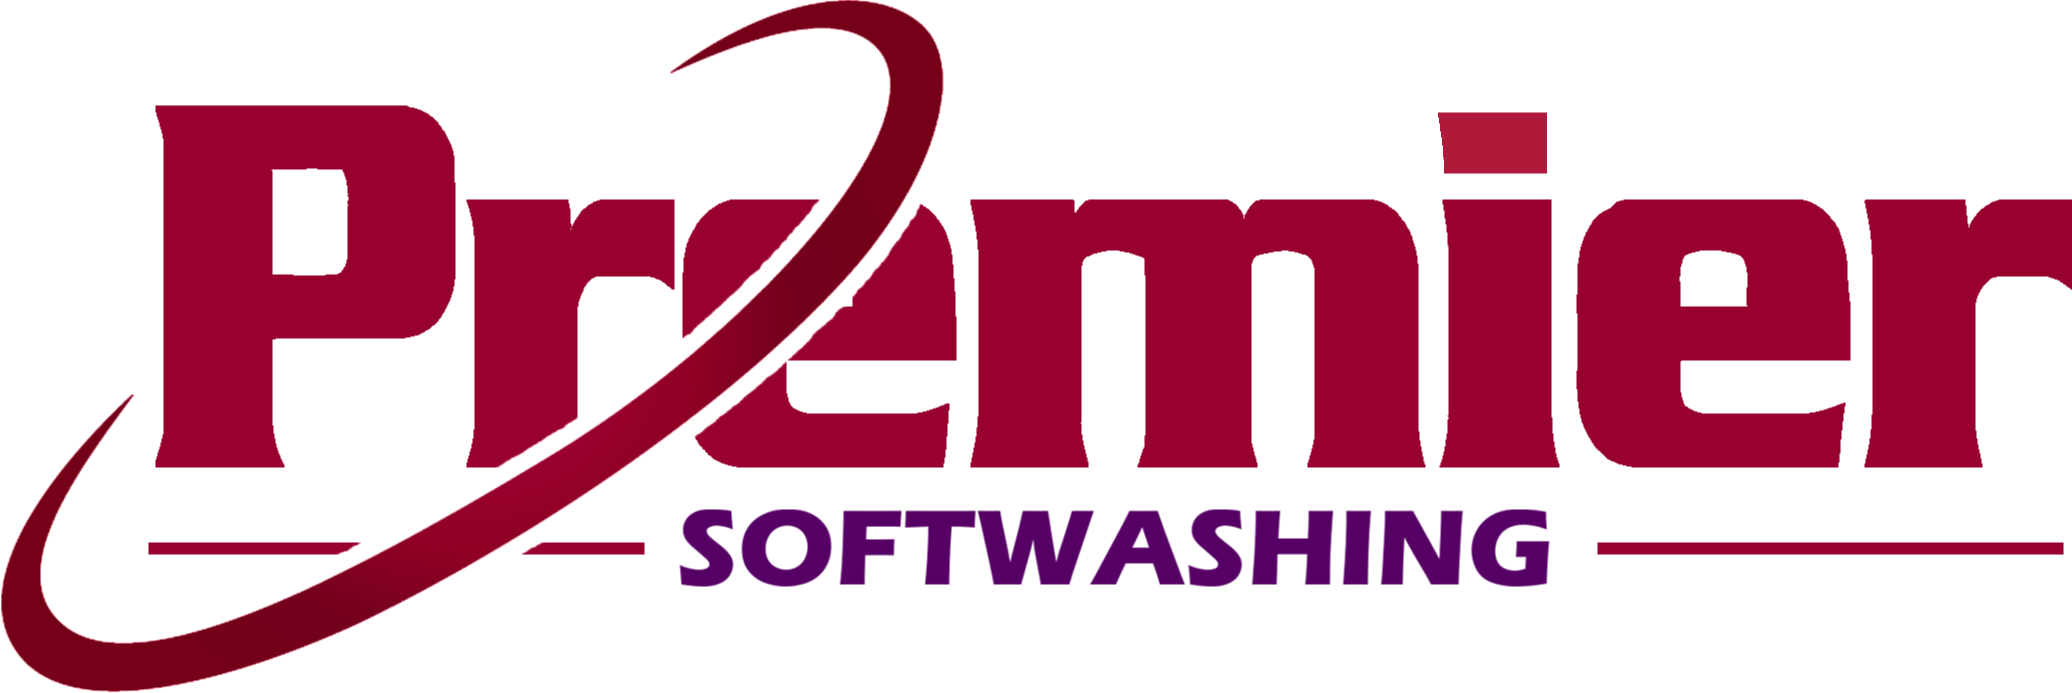 Premier Softwashing Logo